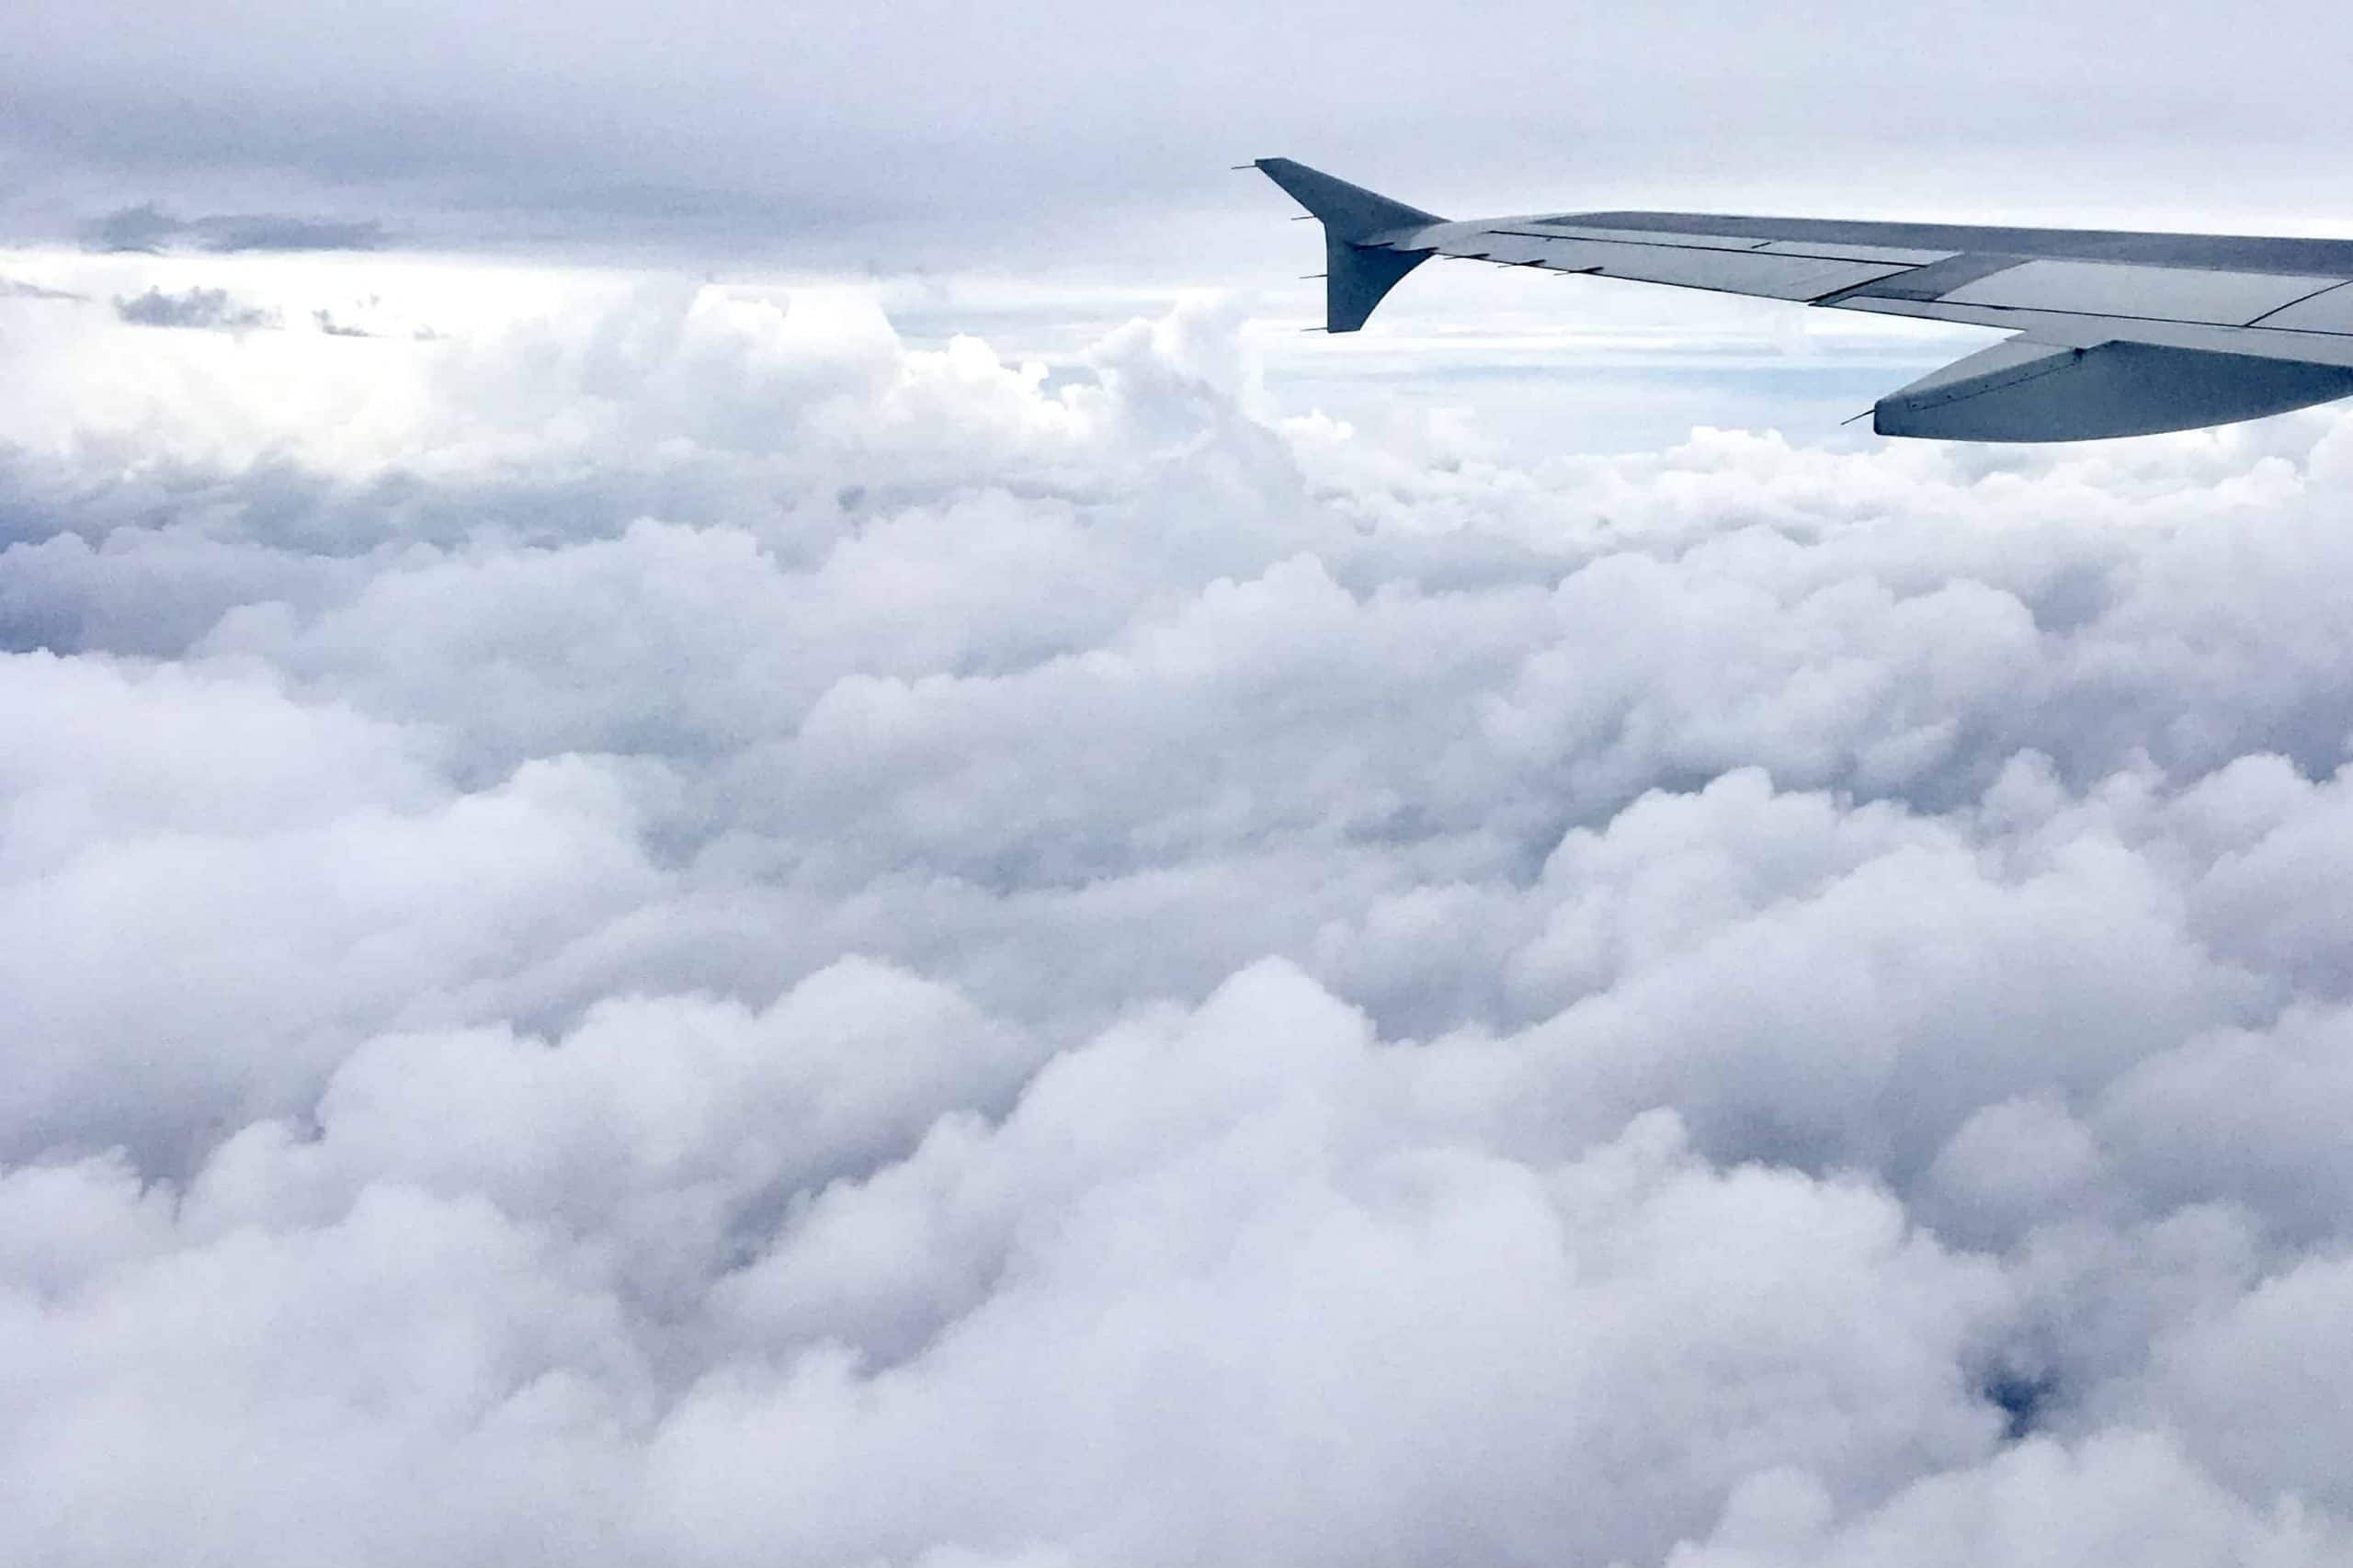 Cloudy sky under a plane wing